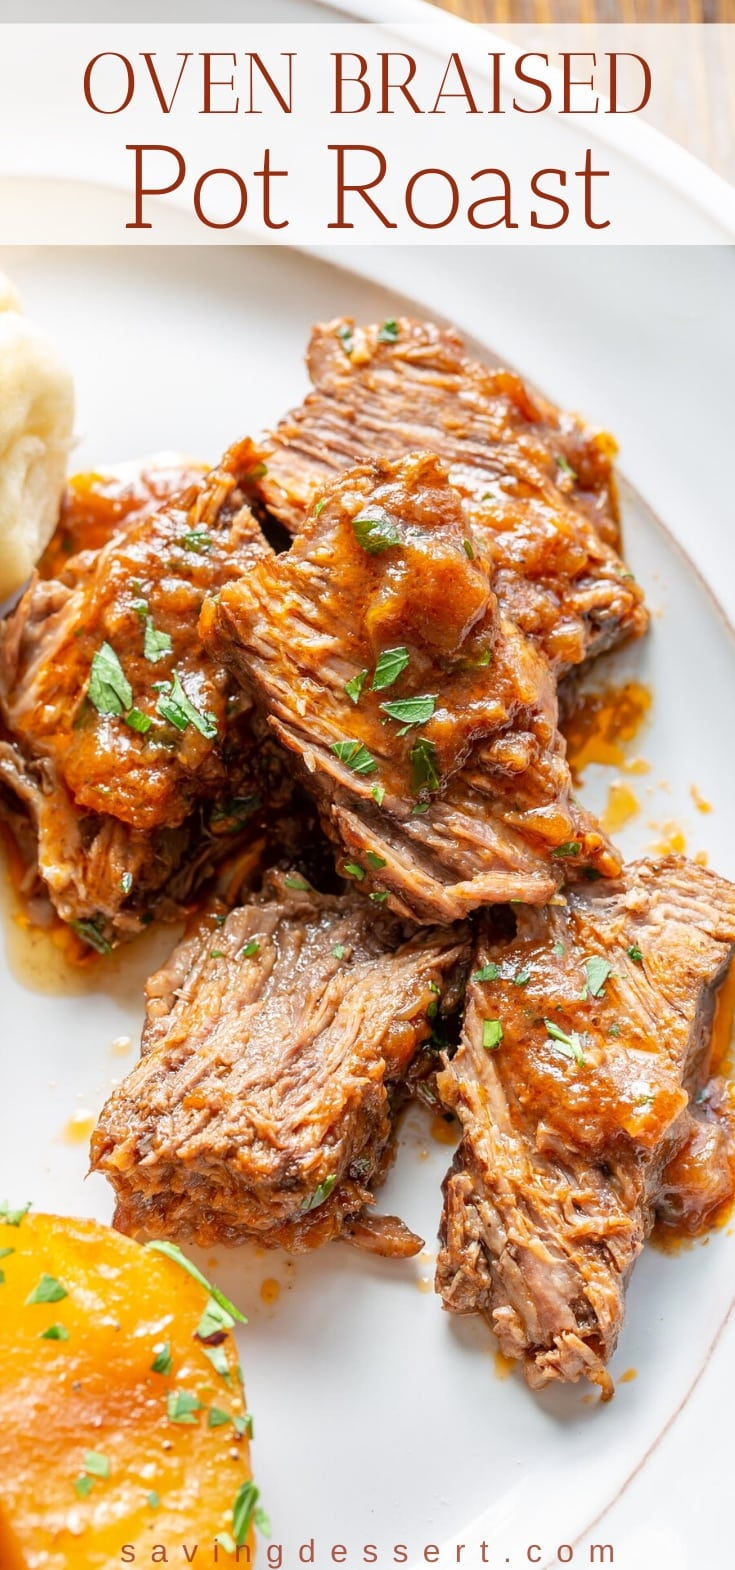 A plate with sliced oven braised roast beef